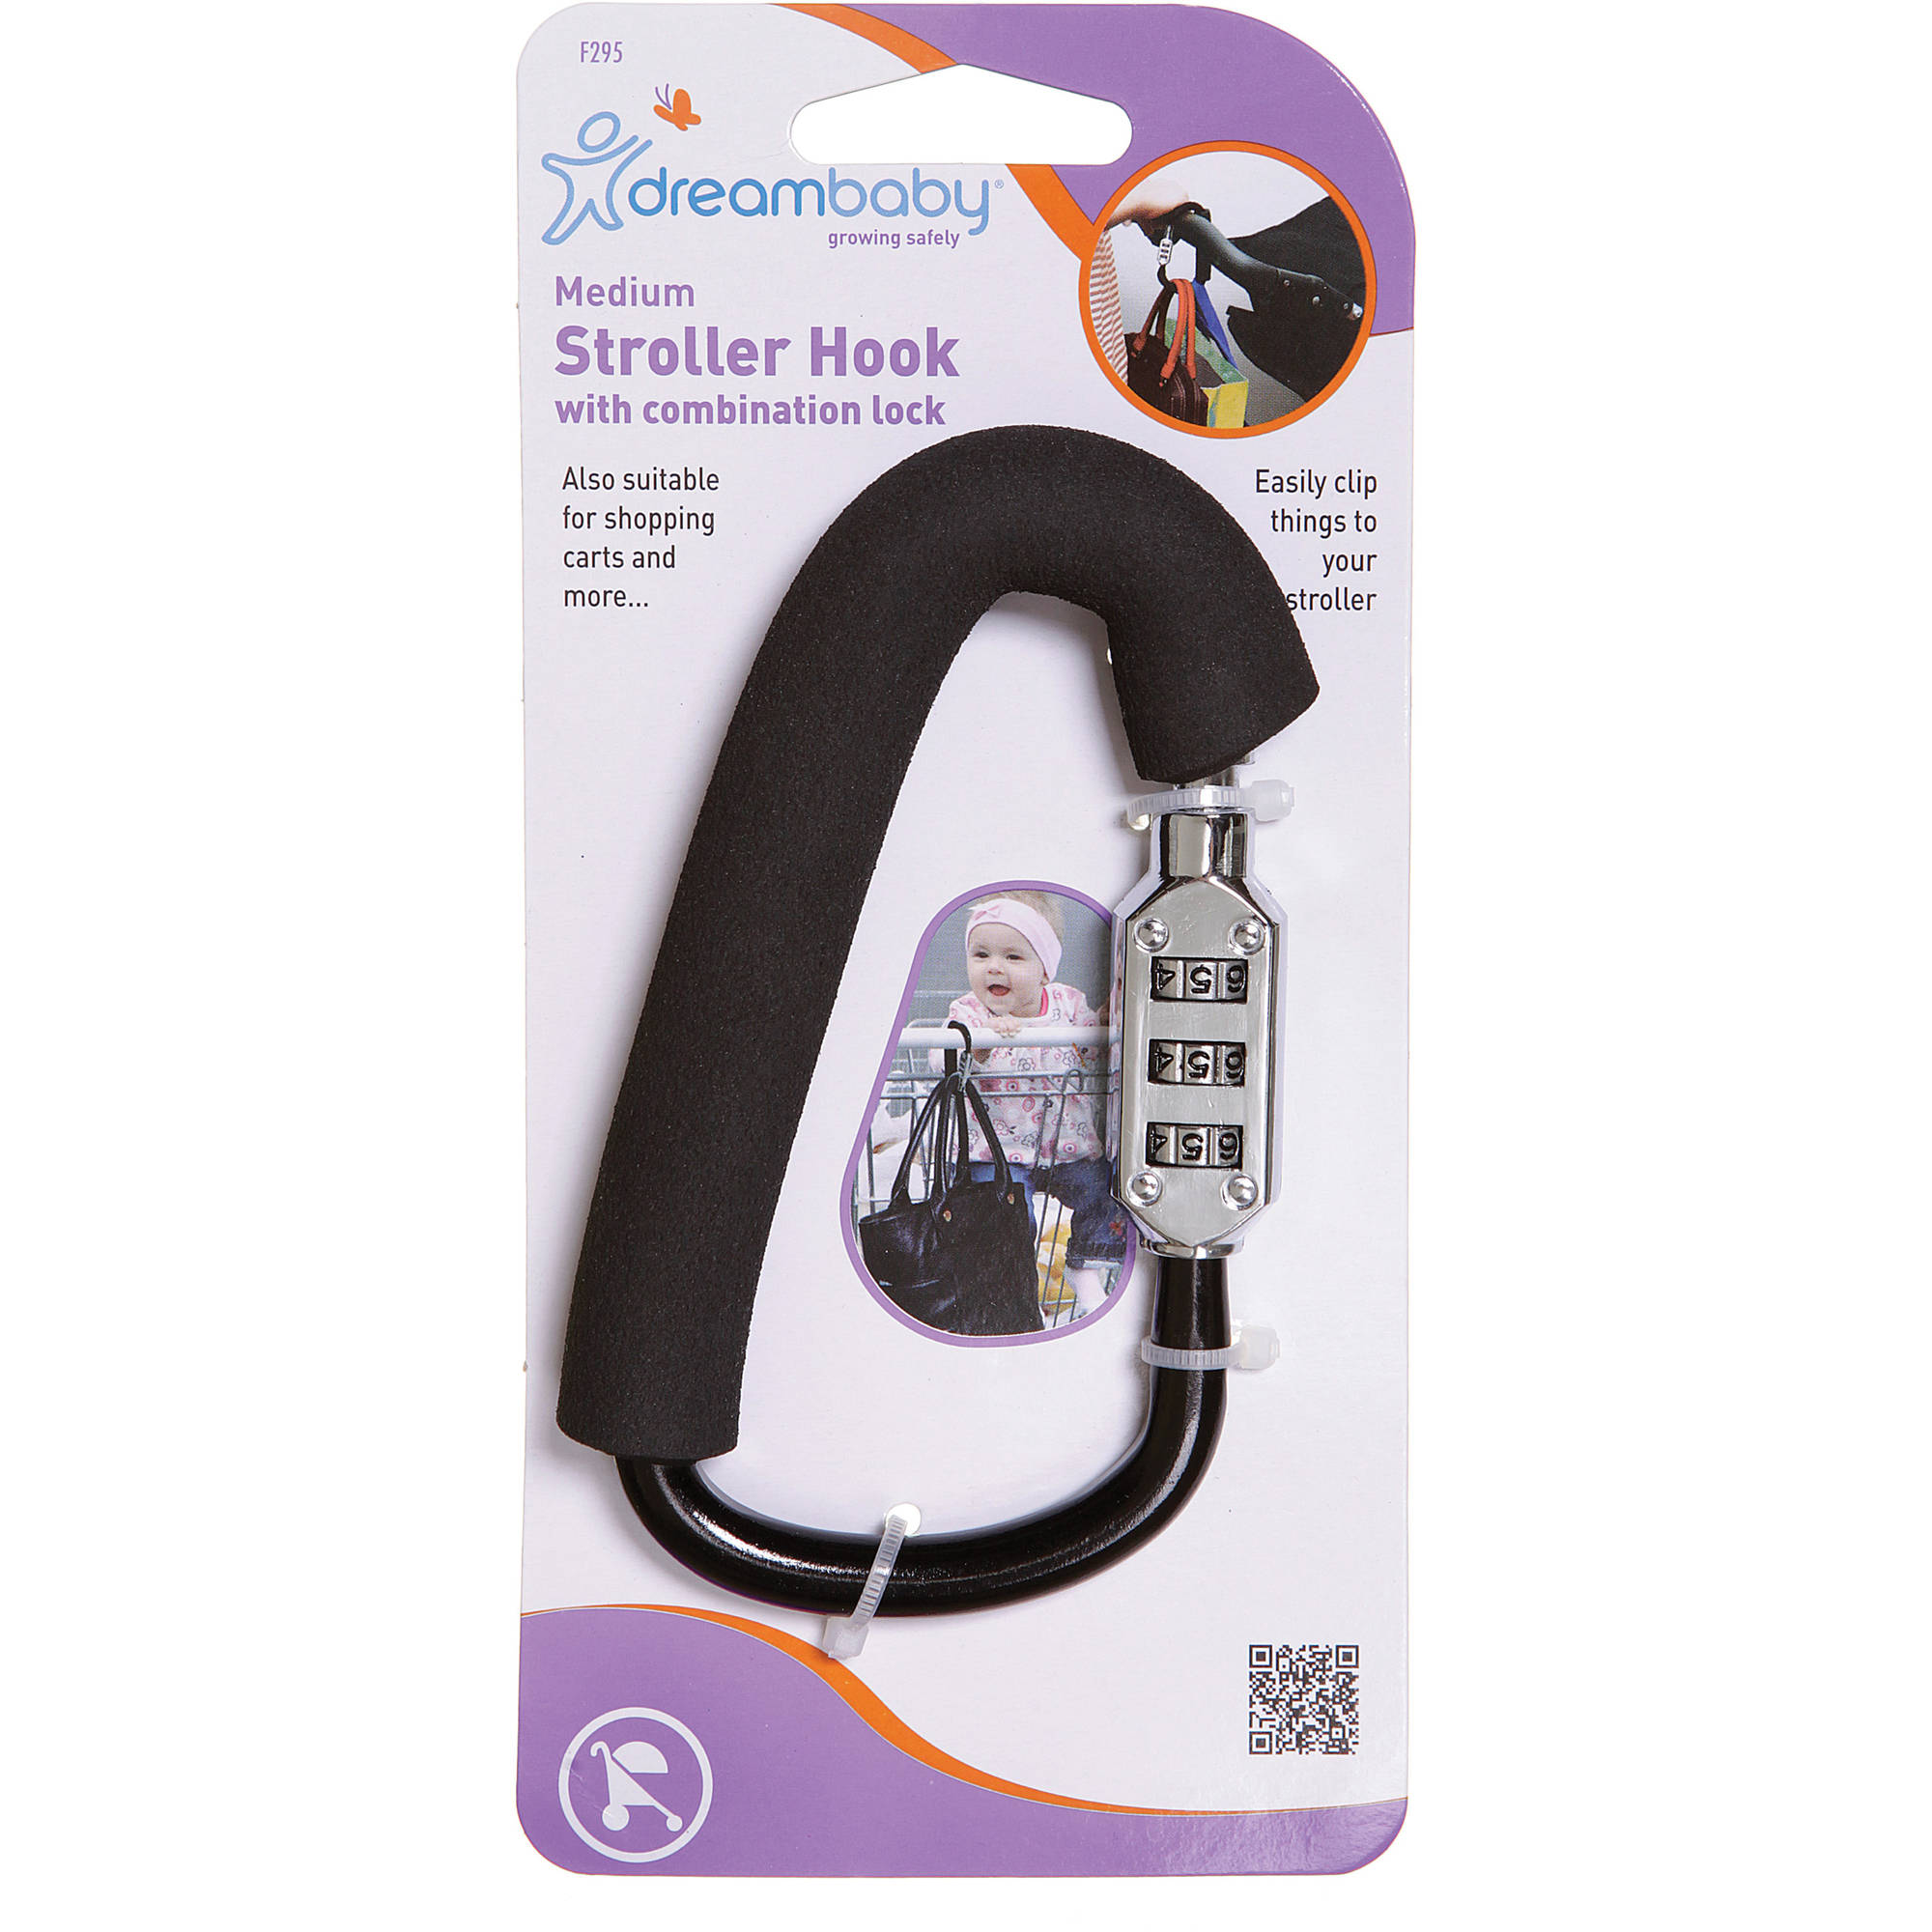 Dreambaby Stroller Hook with Combination Lock, Medium